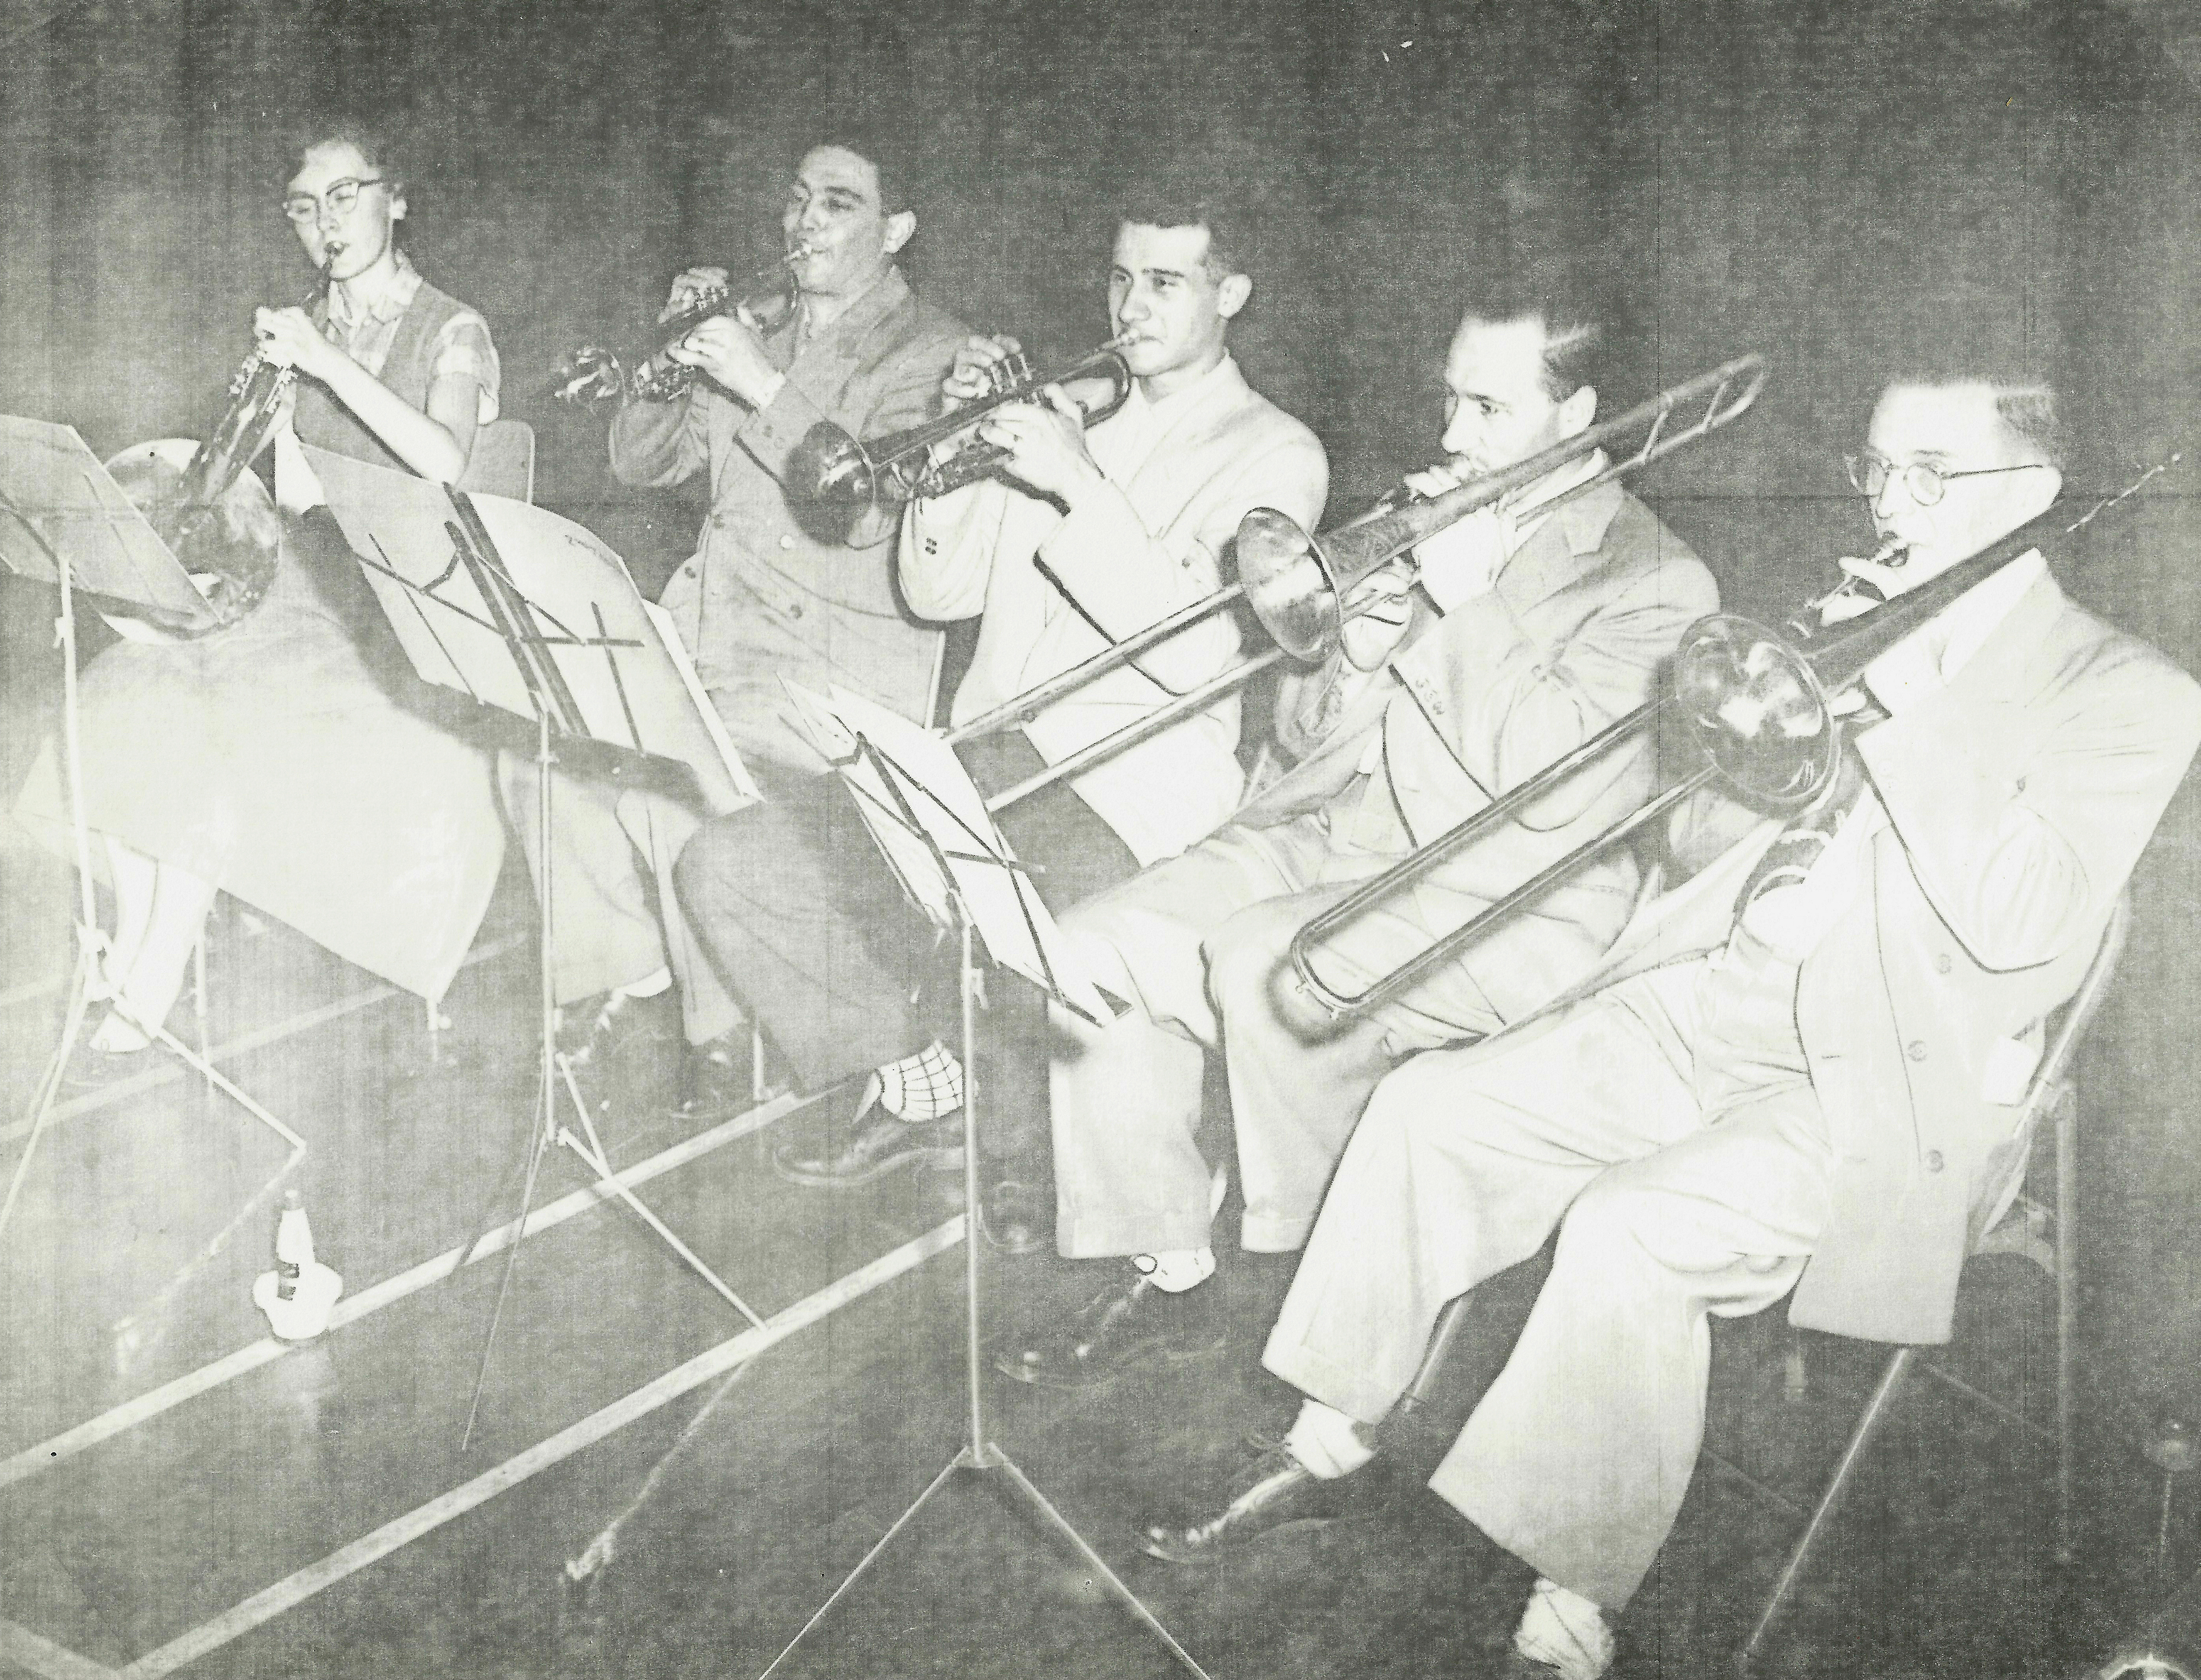 5 brass players in rehearsal